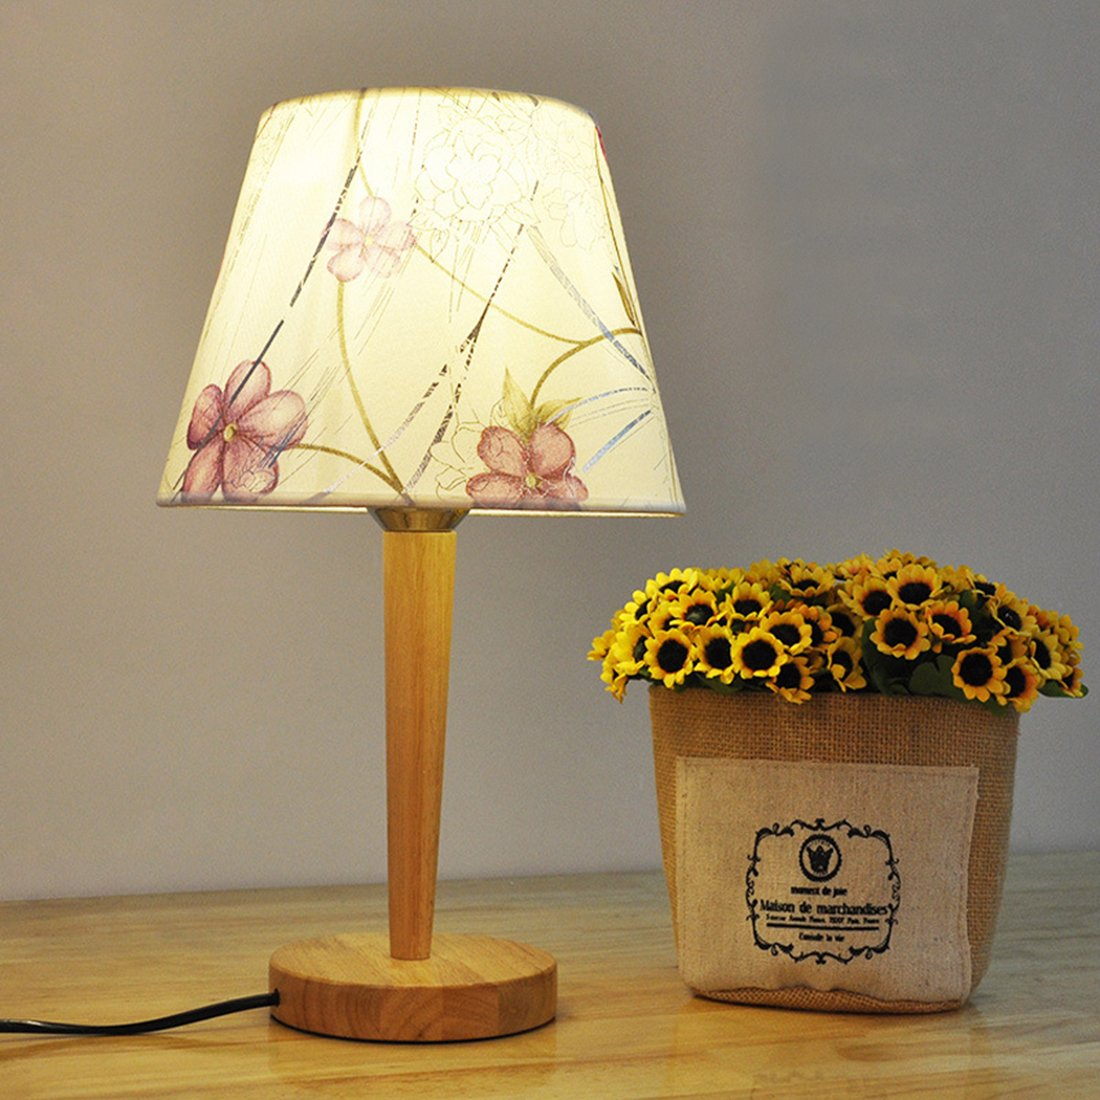 Amazon.com: PINCHU Modern Simple Wooden Table Lamp Bedroom ...